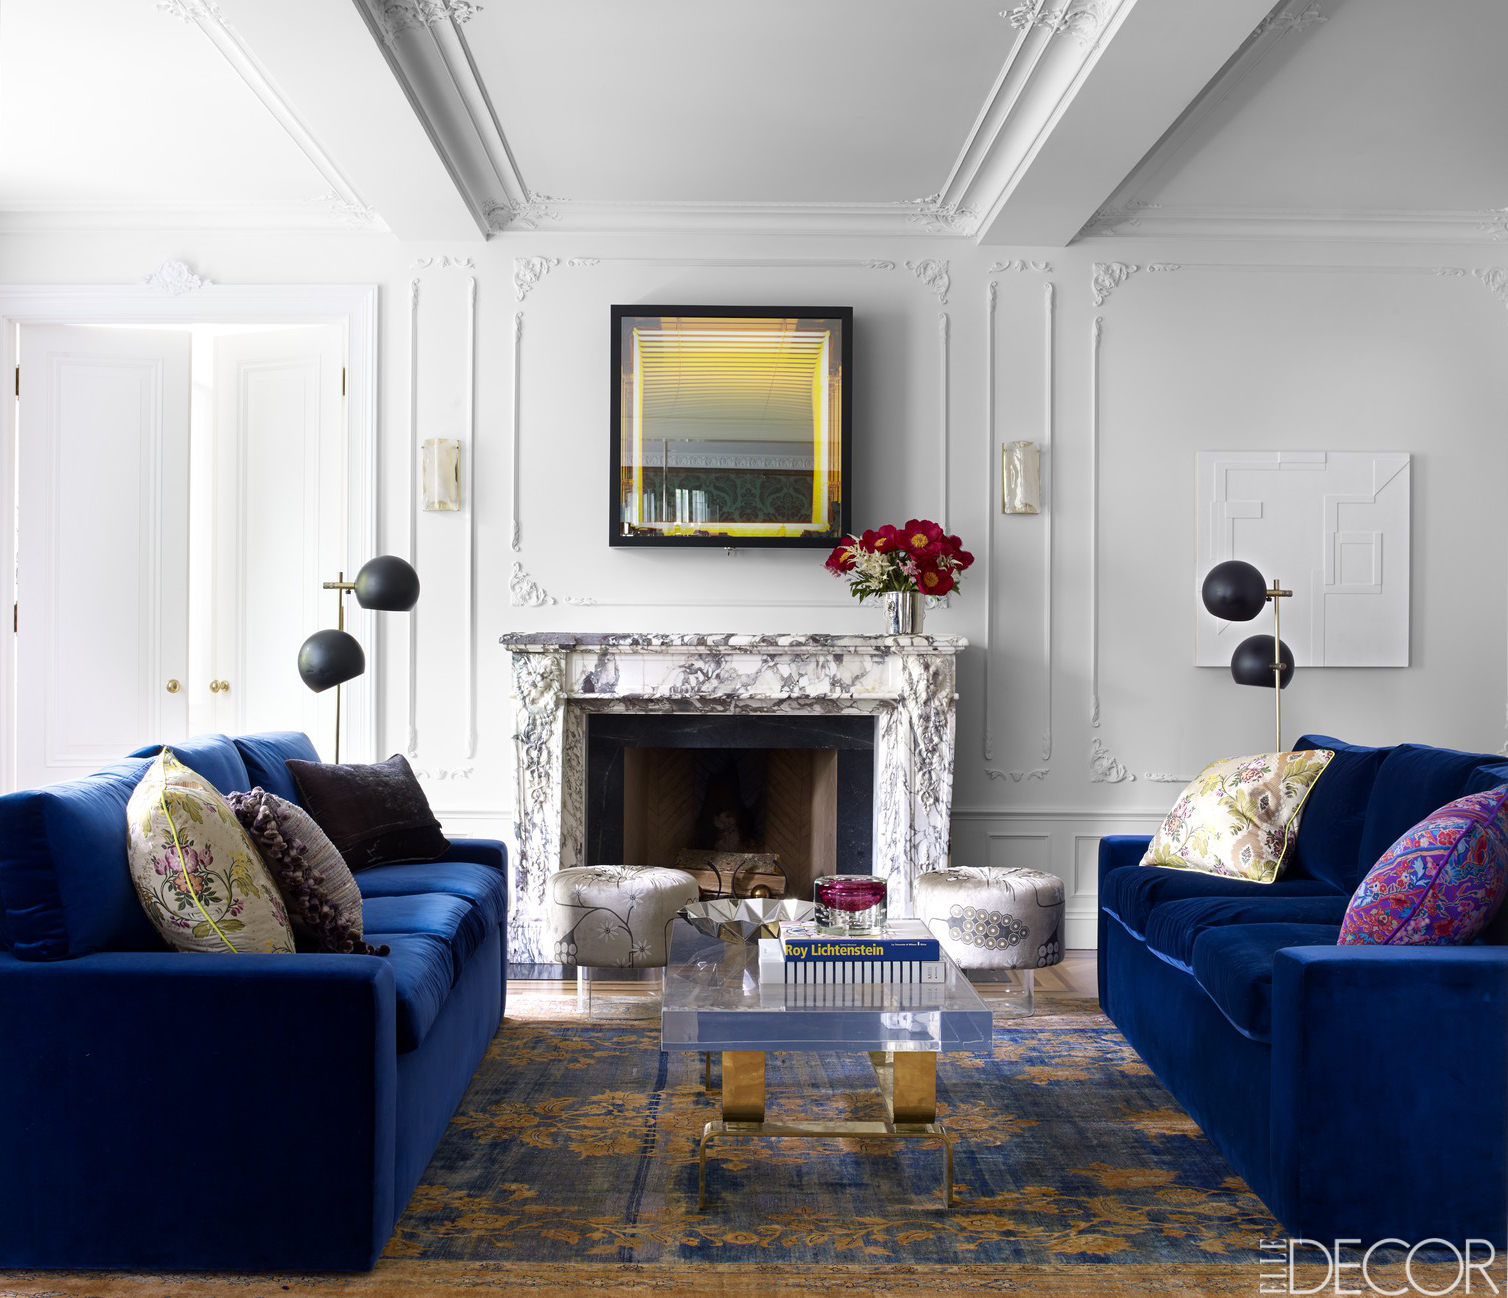 Rooms Decoration: HOUSE TOUR: A New York Apartment With Dramatic Flair